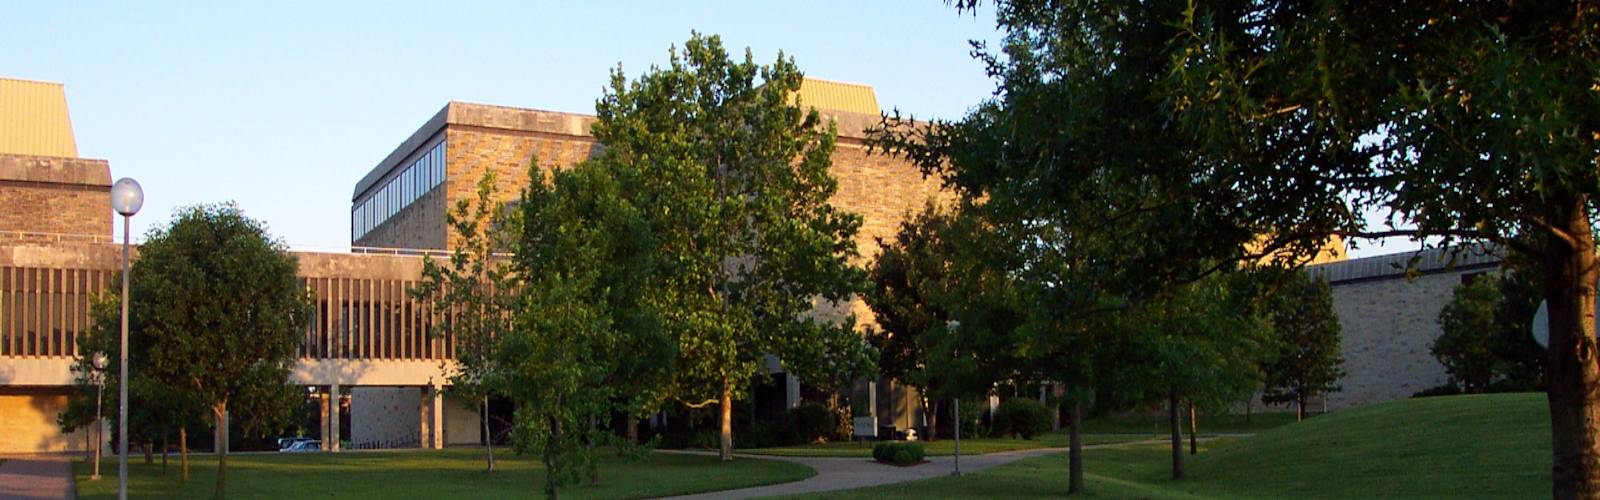 College of Veterinary Medicine at Kansas State University